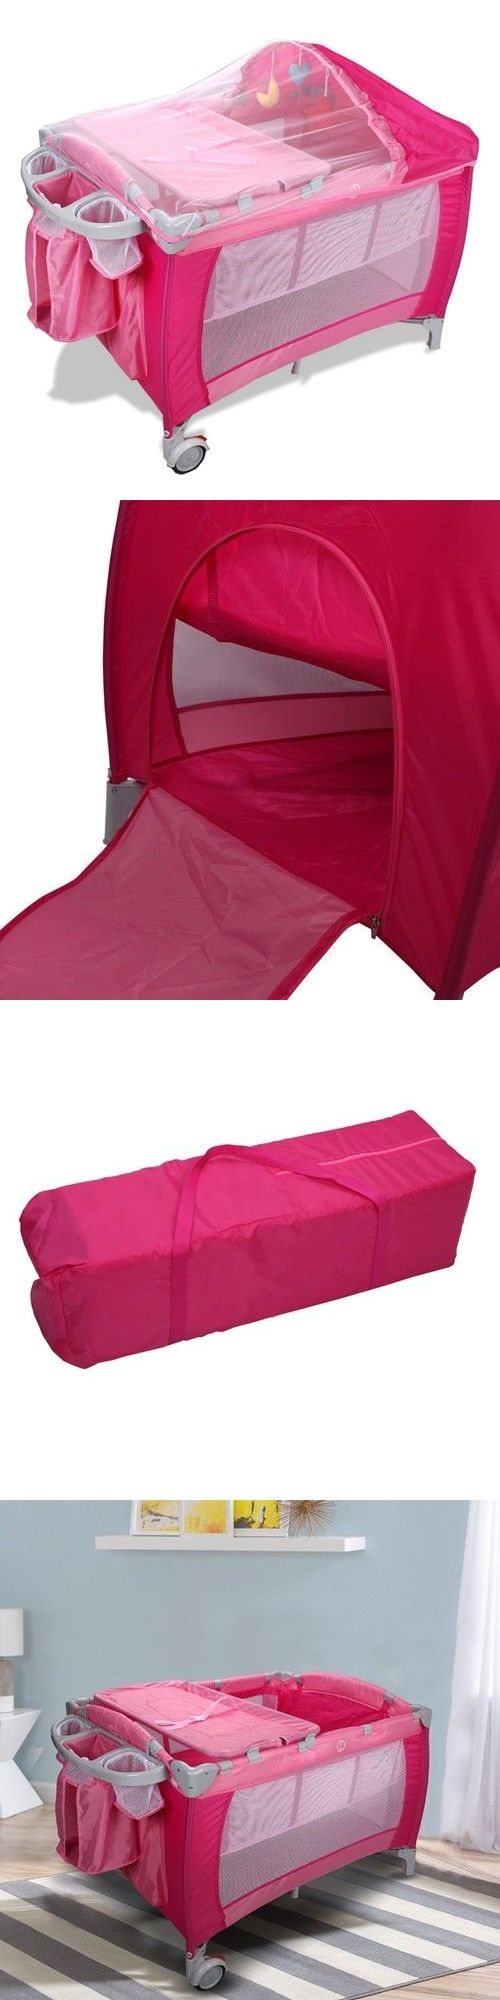 Baby Gear 100223: Pink Foldable Baby Crib Playpen W Mosquito Net And Bag -> BUY IT NOW ONLY: $45.59 on eBay!